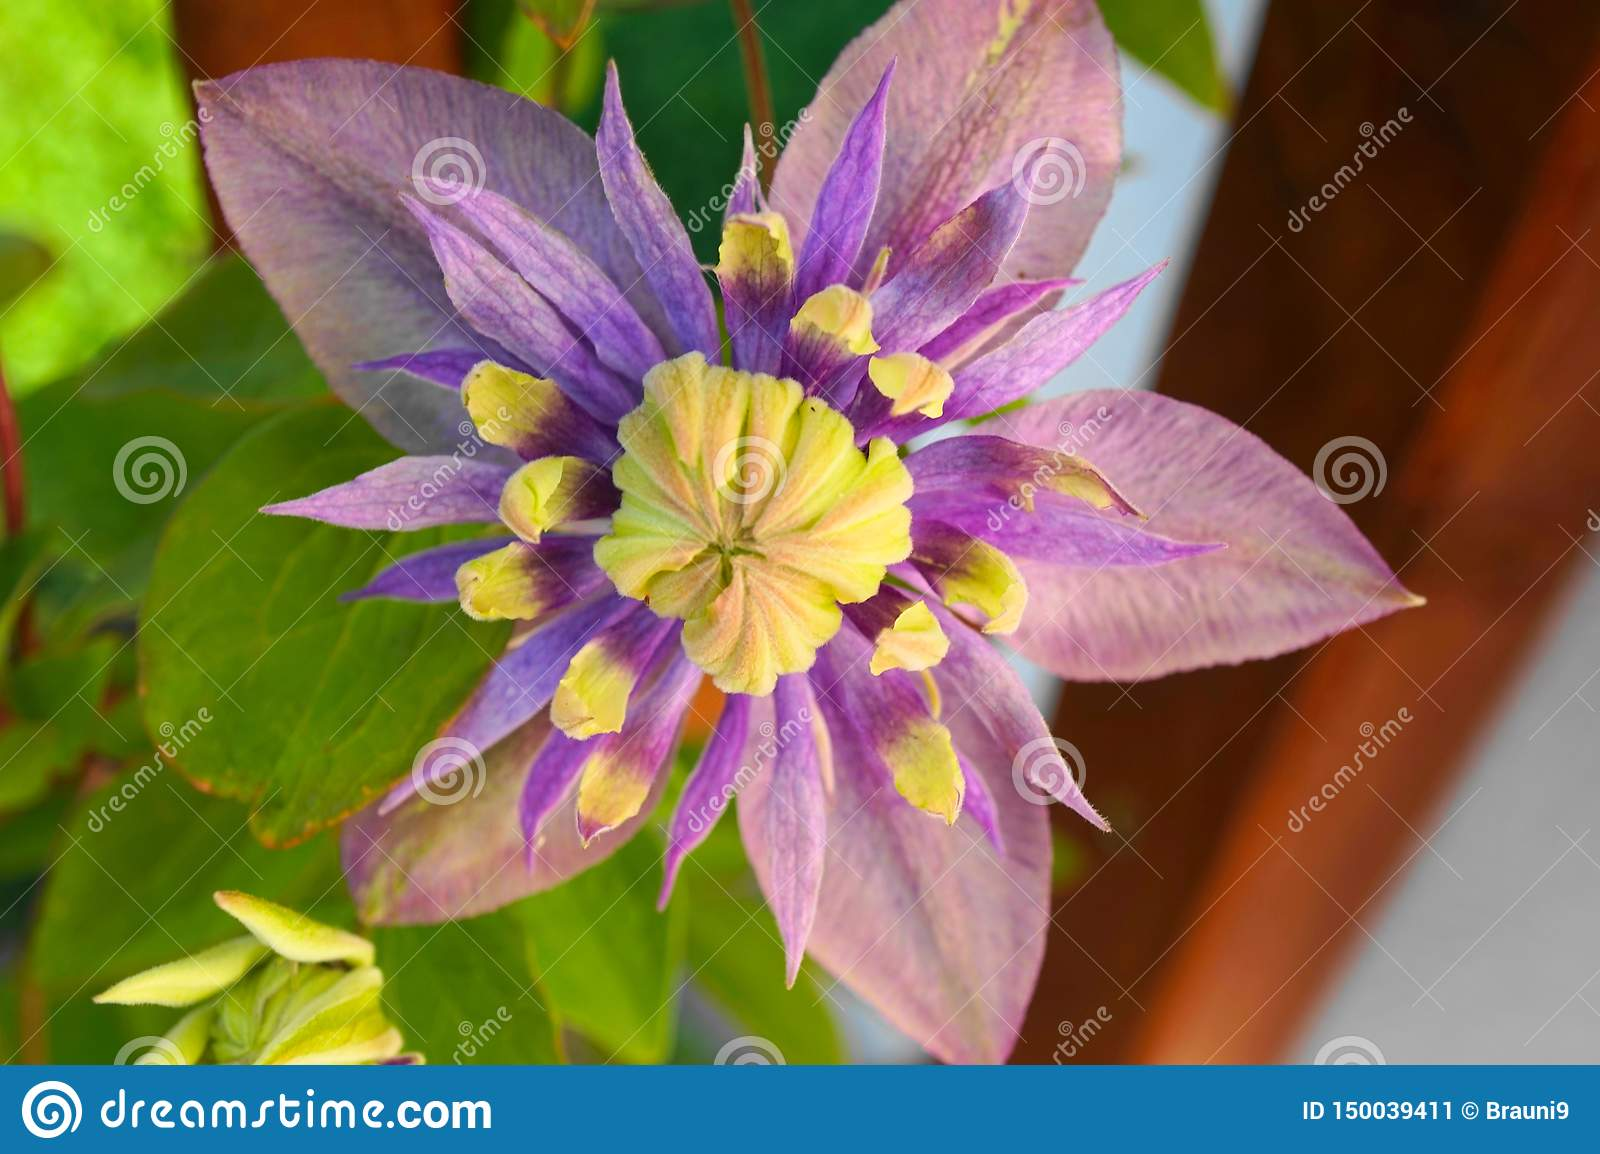 Beautiful Flower with great Colours shining in the sun